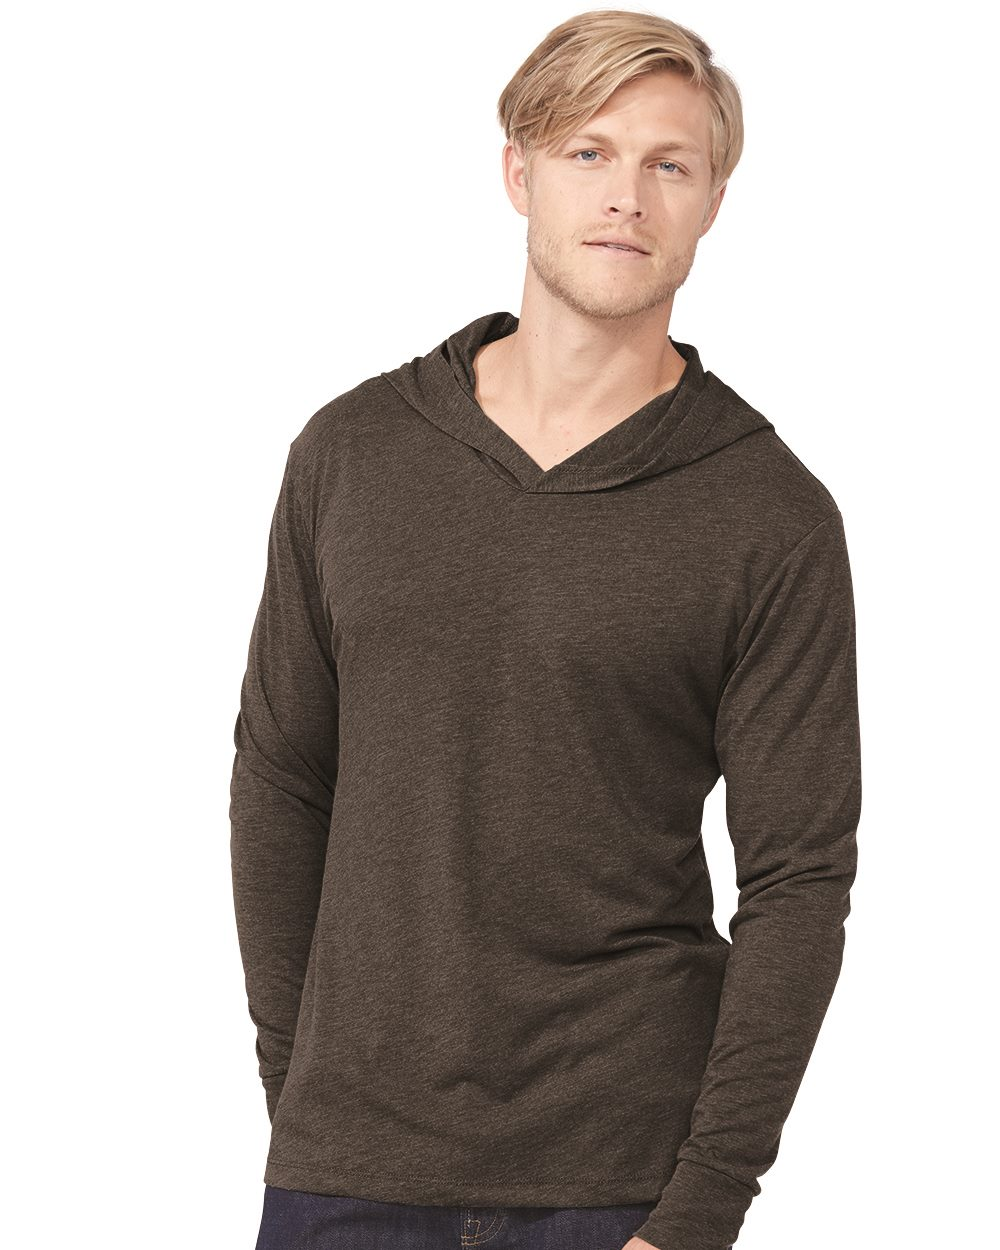 Next Level 6021- Unisex Triblend Long-Sleeve Hoodie